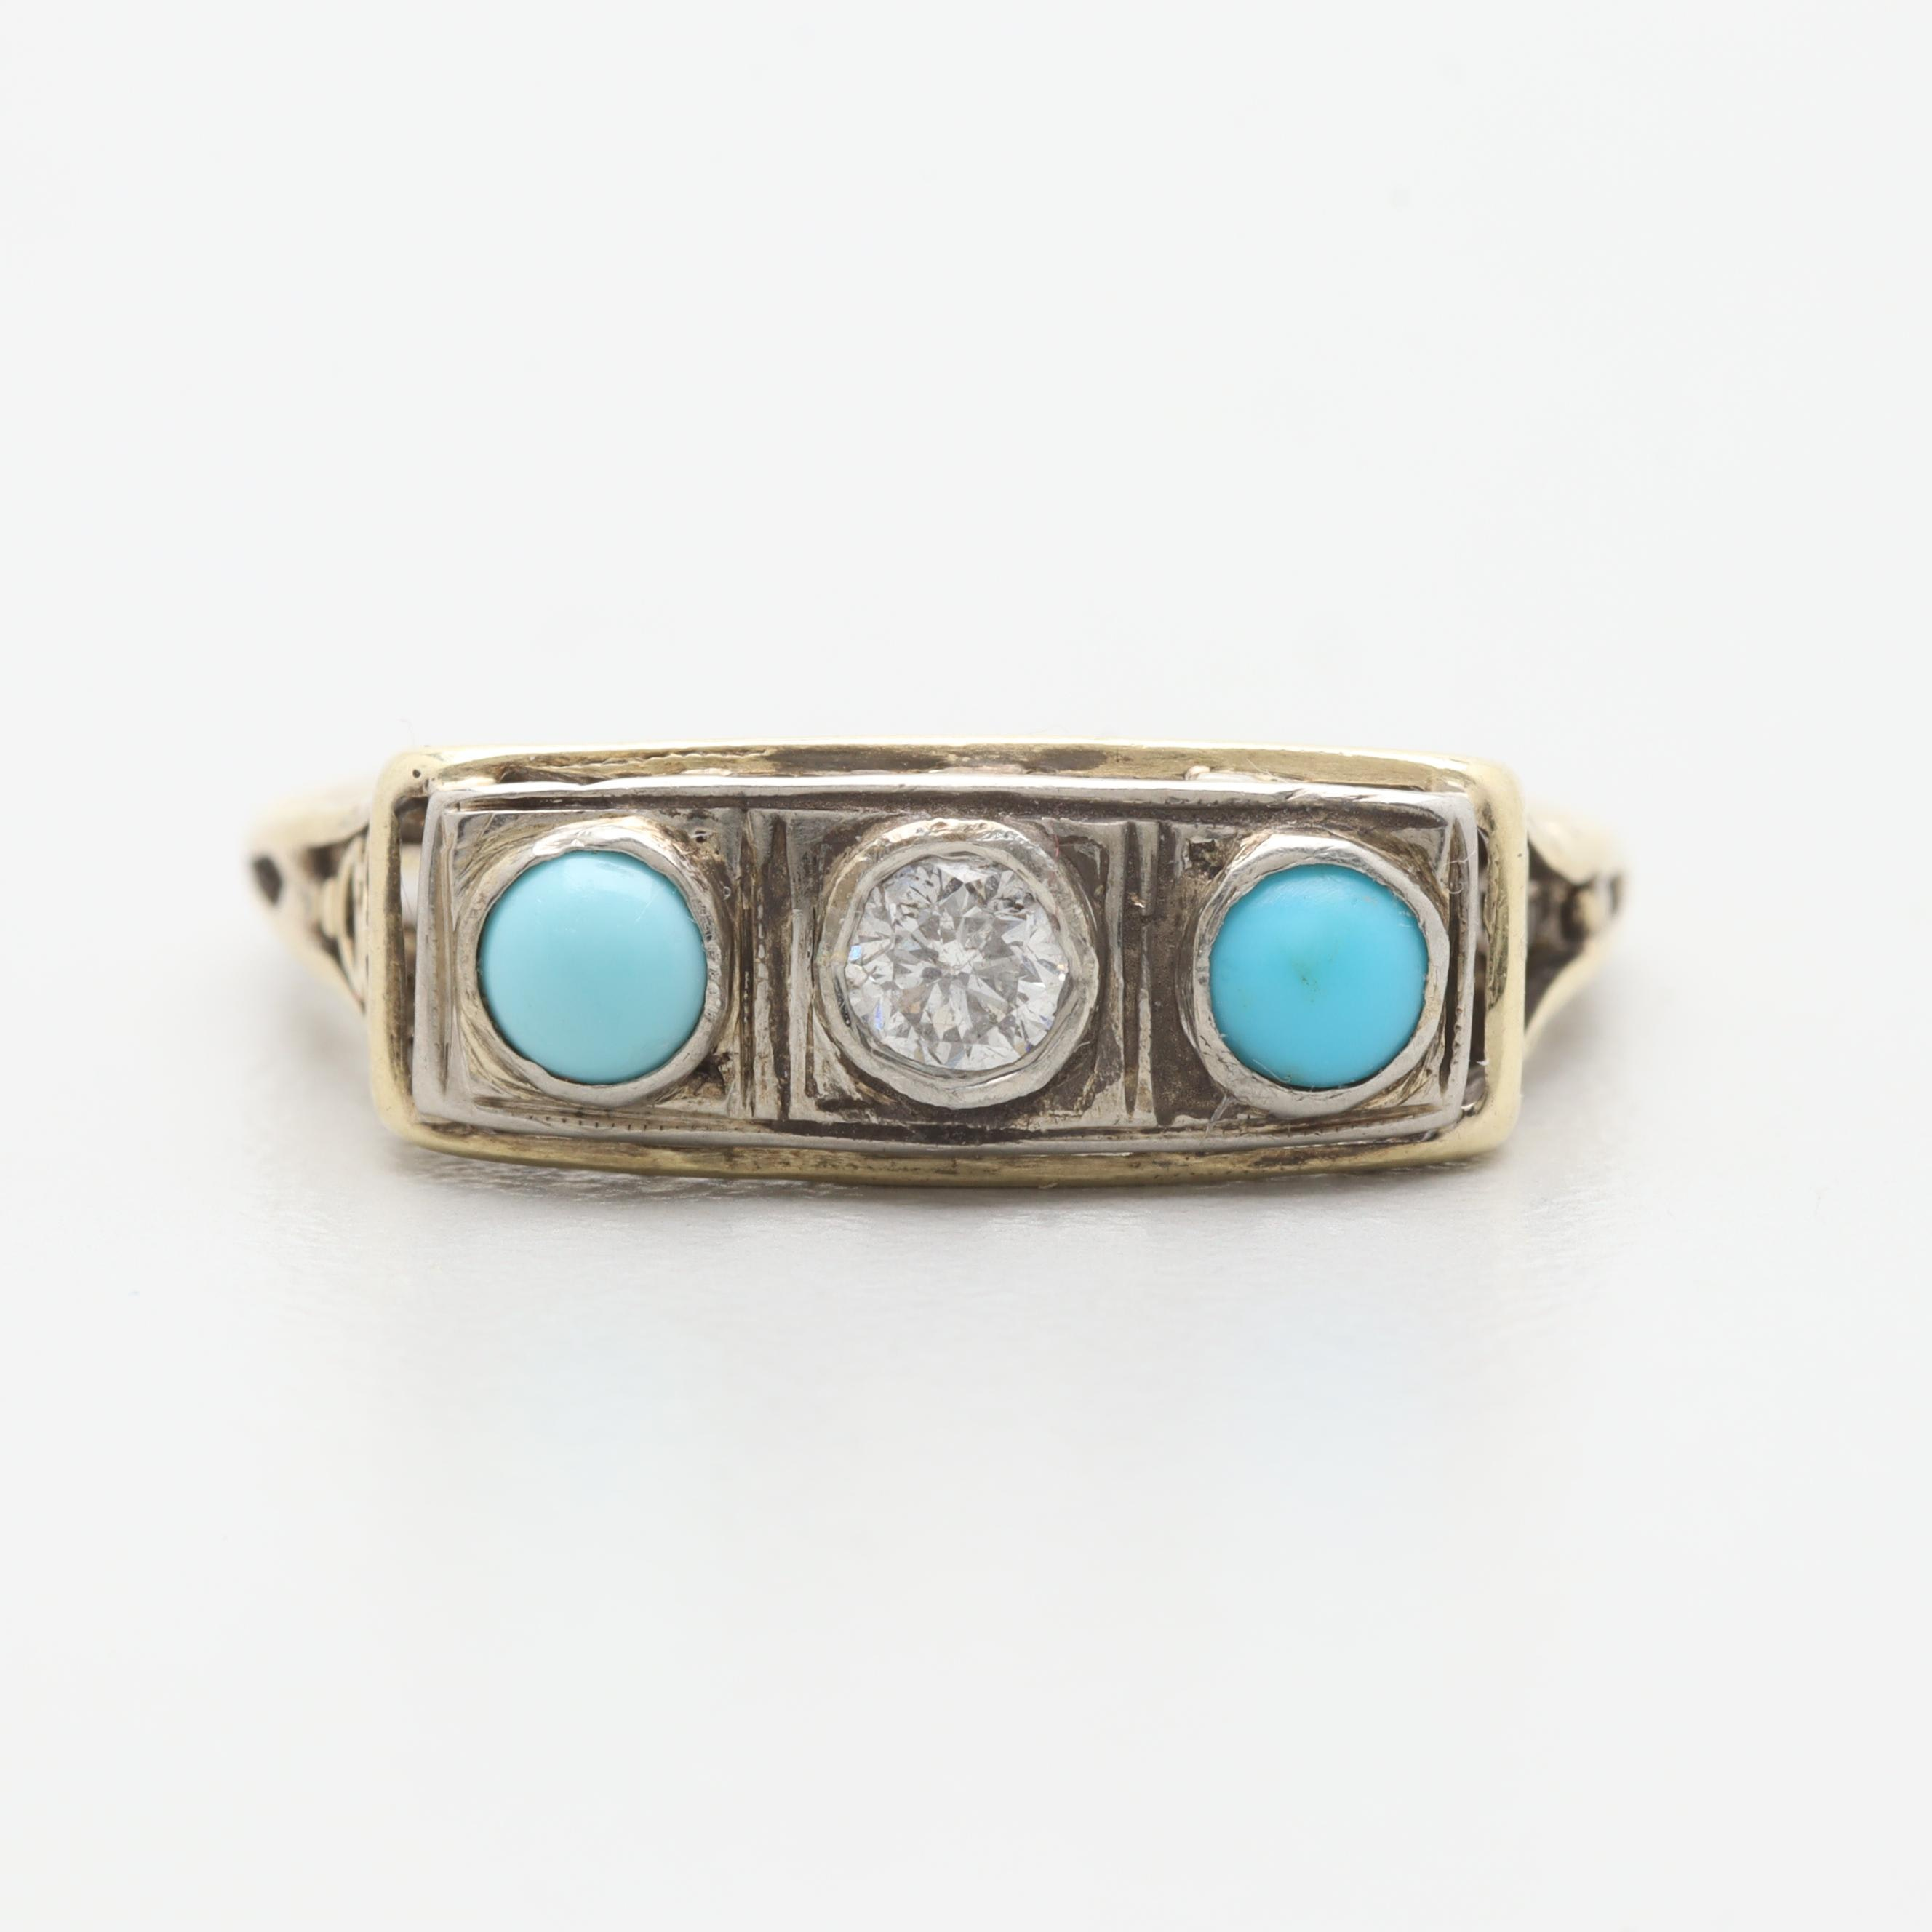 Art Deco 14K Yellow and White Gold Diamond and Turquoise Ring